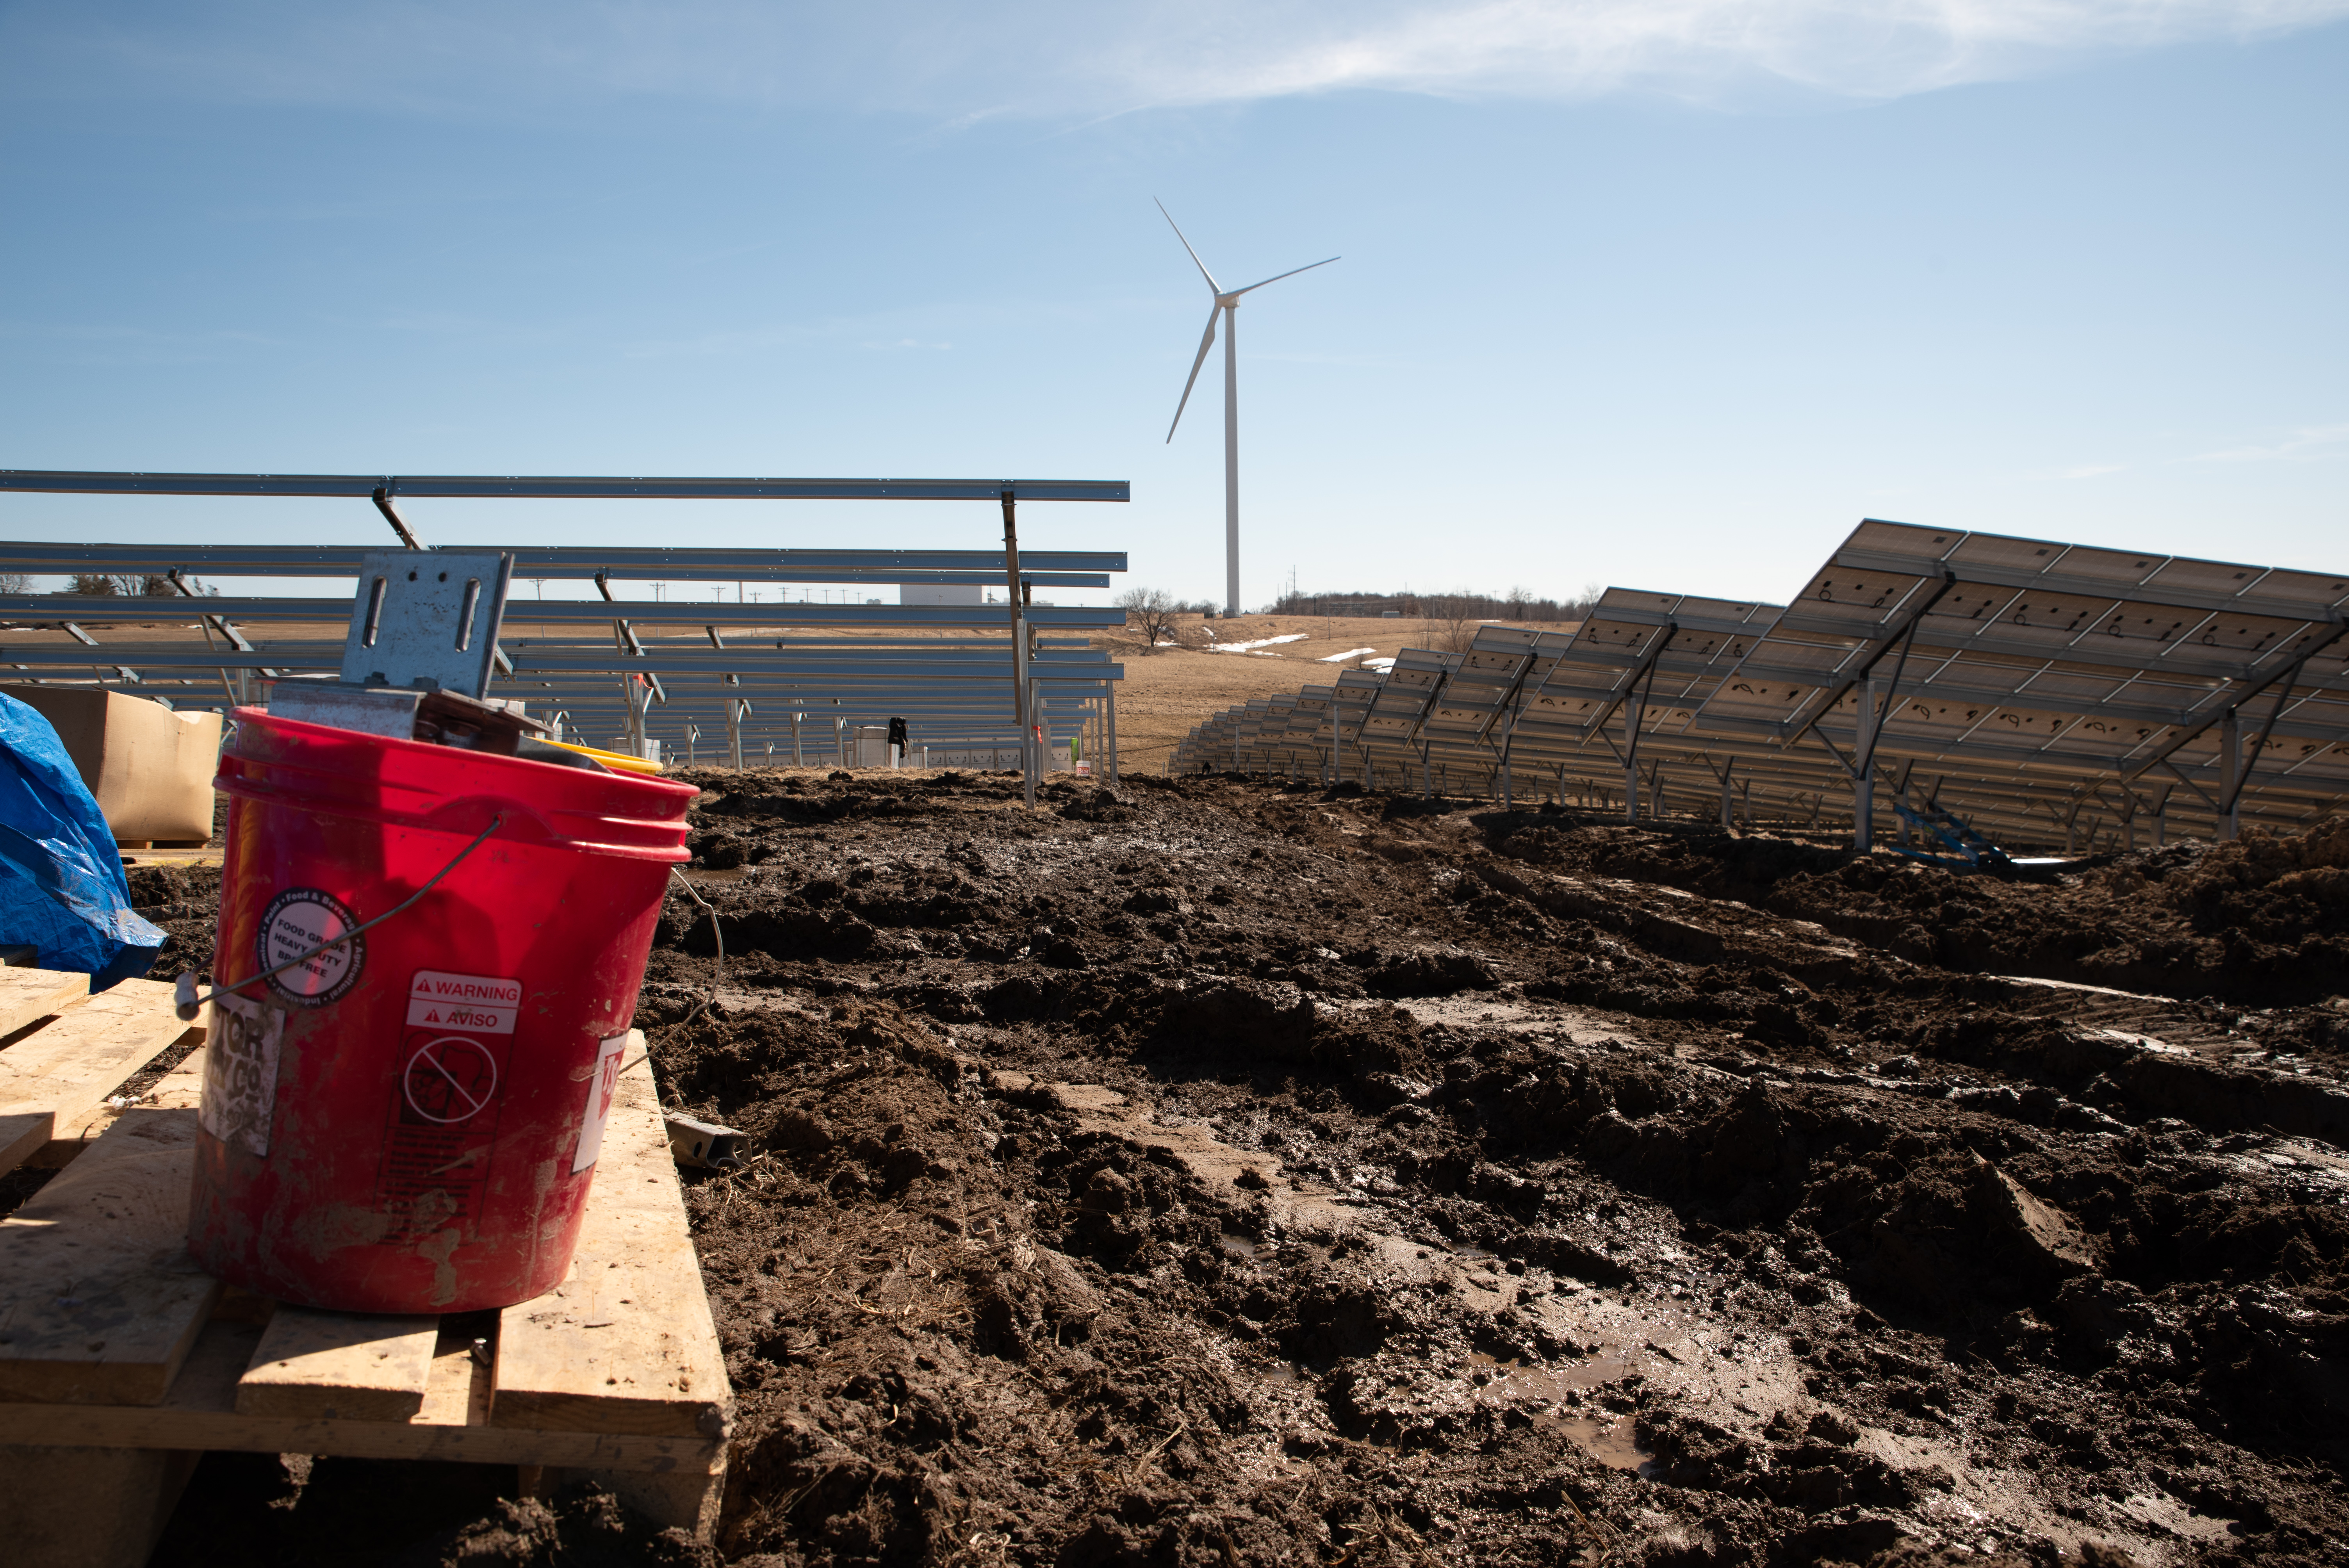 A red bucket on a table overlooking a field of churned, muddy ground, with partially assembled solar panels in rows and a wind turbine in the distance.